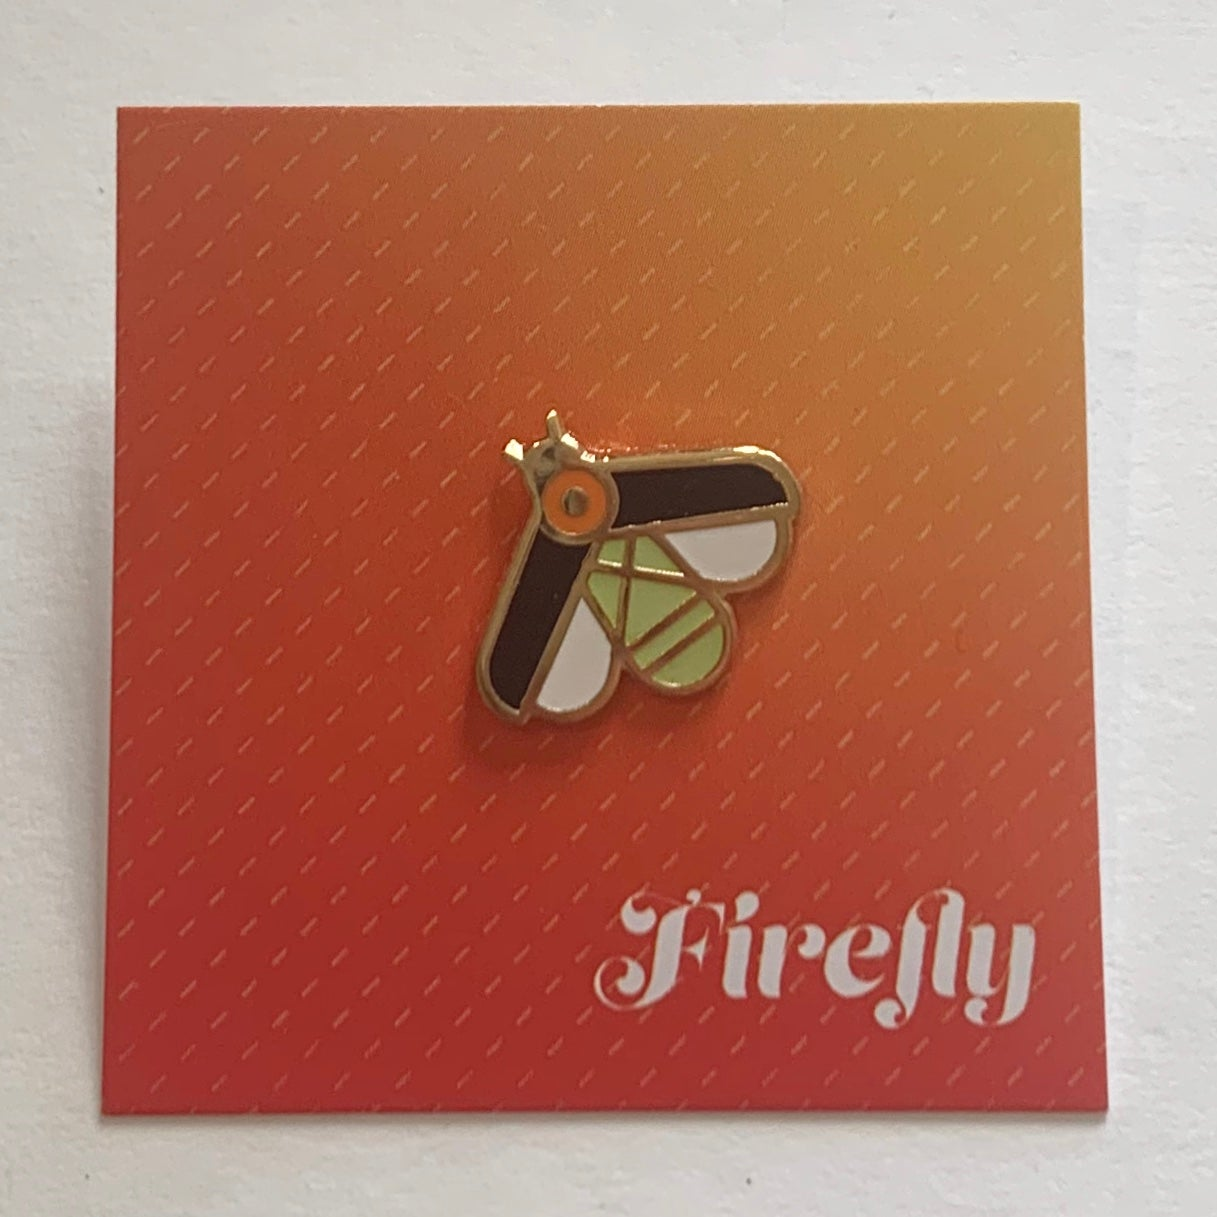 Image of Firefly Pin